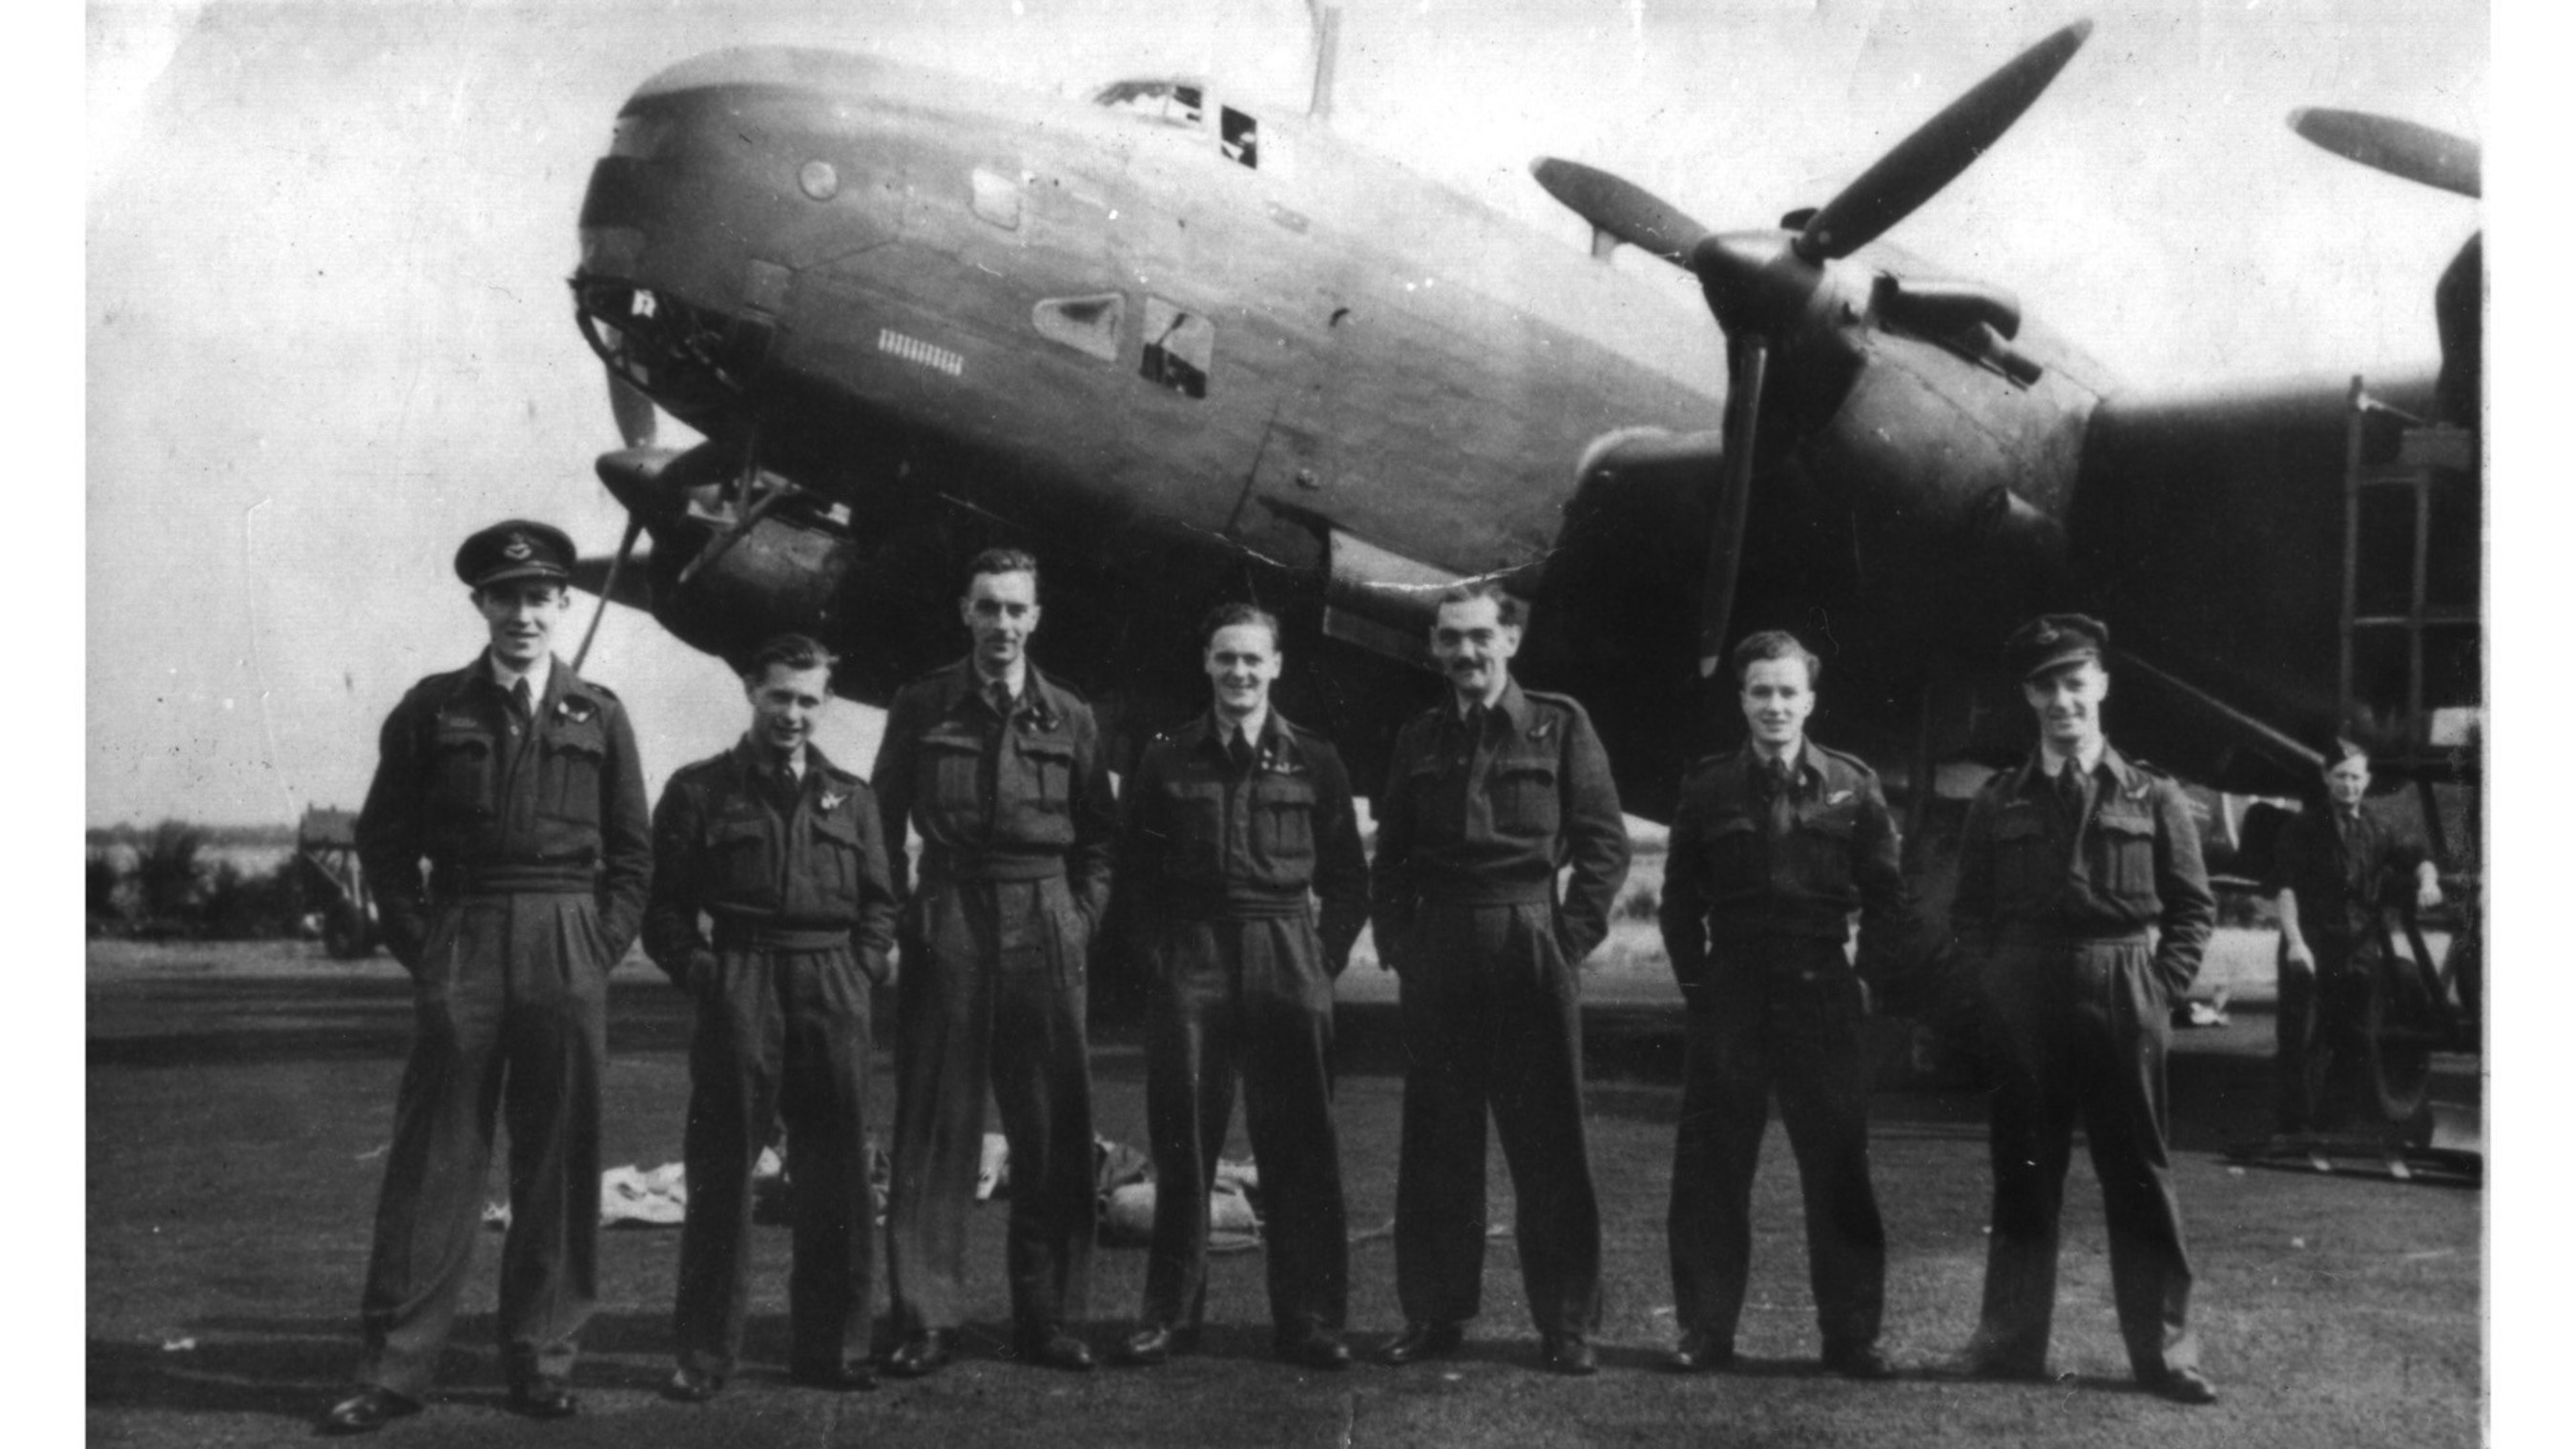 NBC Learn and Vulcan Productions Launch 'Chronicles of Courage' Video Series Highlighting Stories from Veterans of World War II and Military Aviation